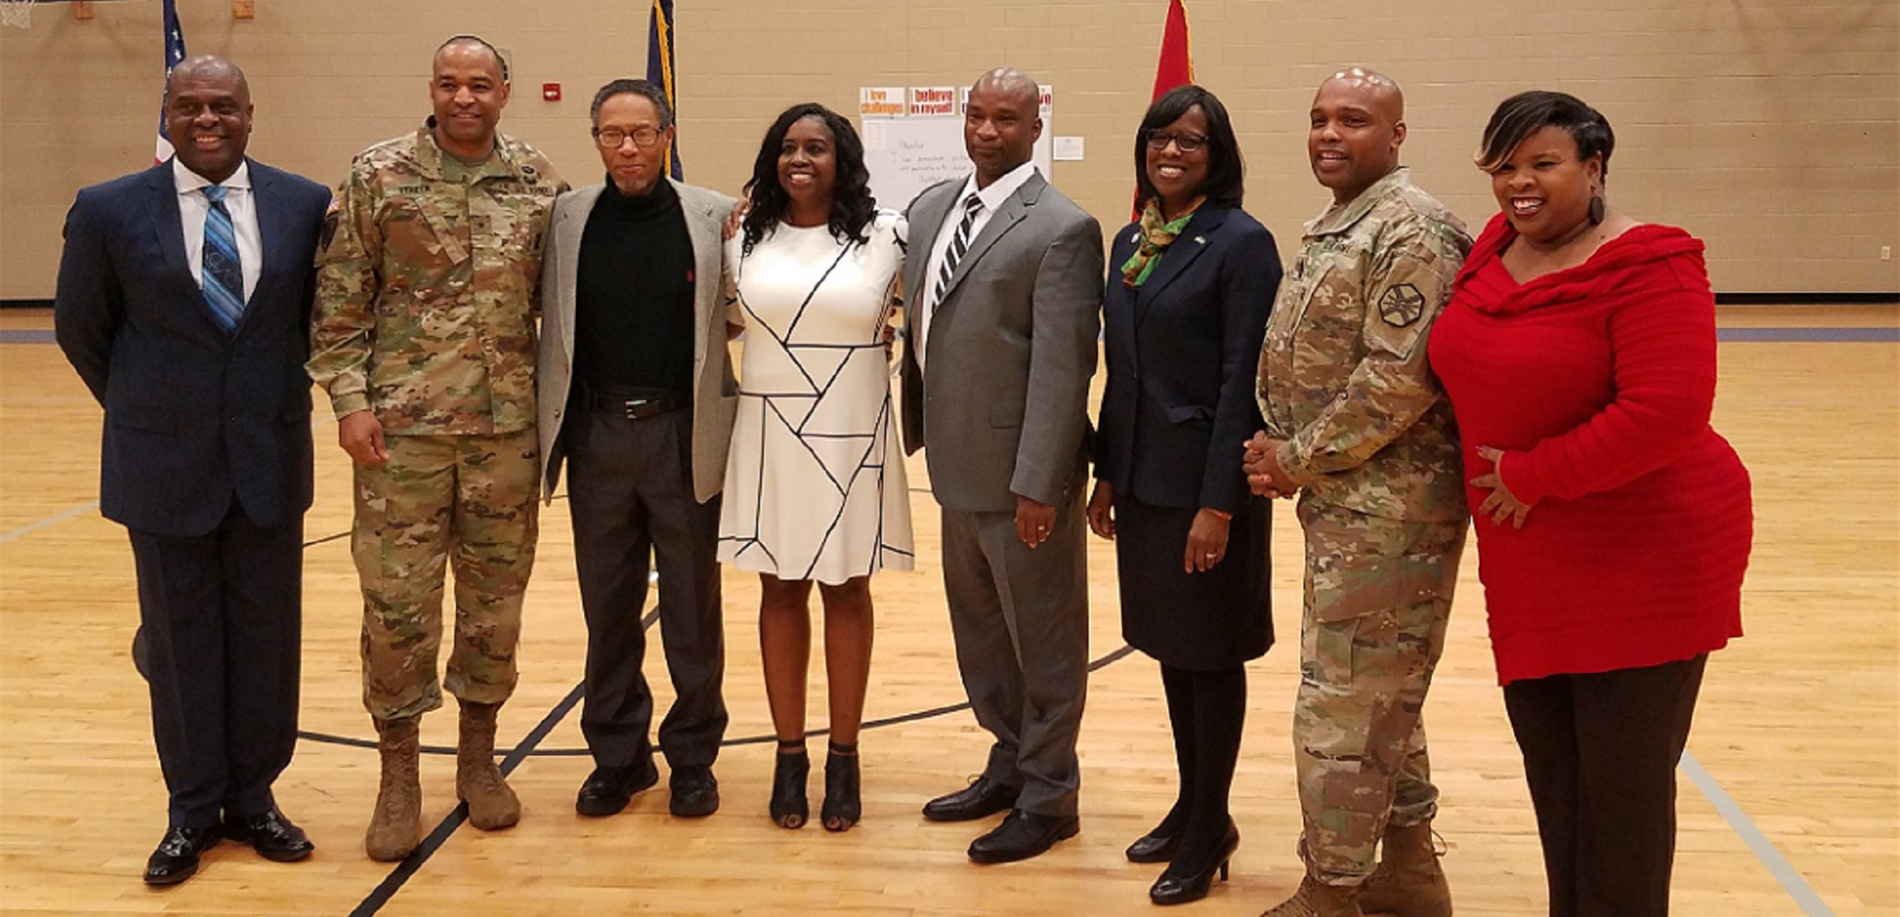 North Middle School gathered community leaders, including Lt. Gov. Jenean Hampton, to discuss leadership for its Black History Month celebration.